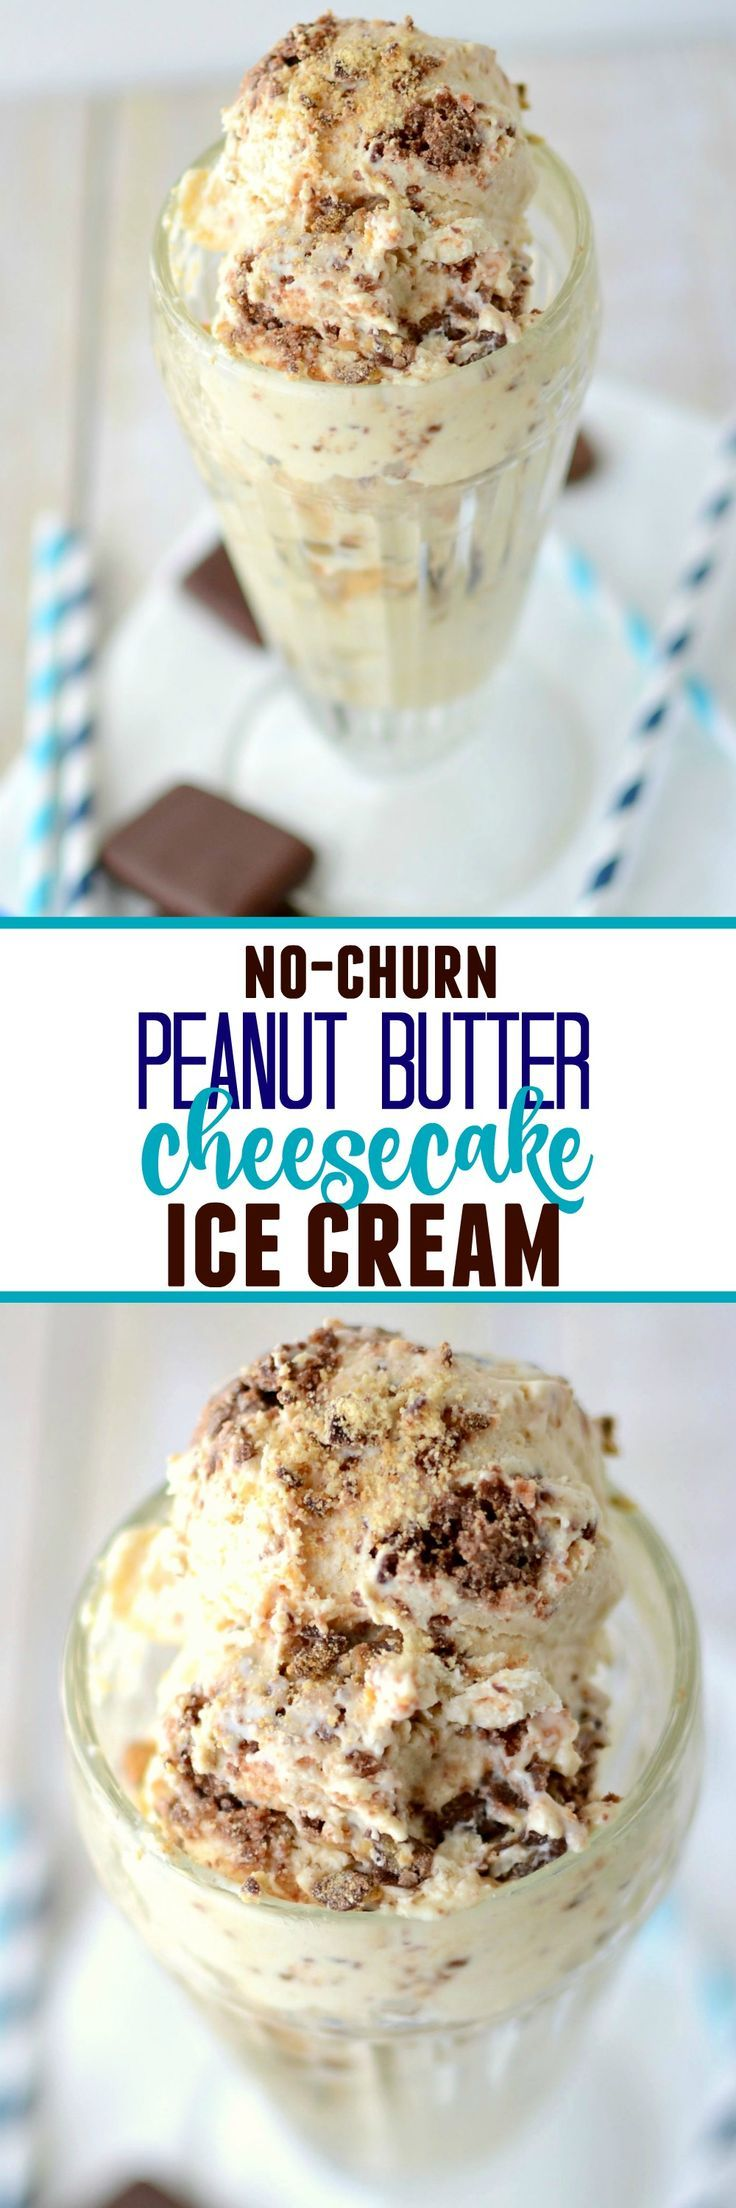 Easy No-Churn Peanut Butter Cheesecake Ice Cream - this is the easiest ice cream recipe you'll ever make! No machine needed!